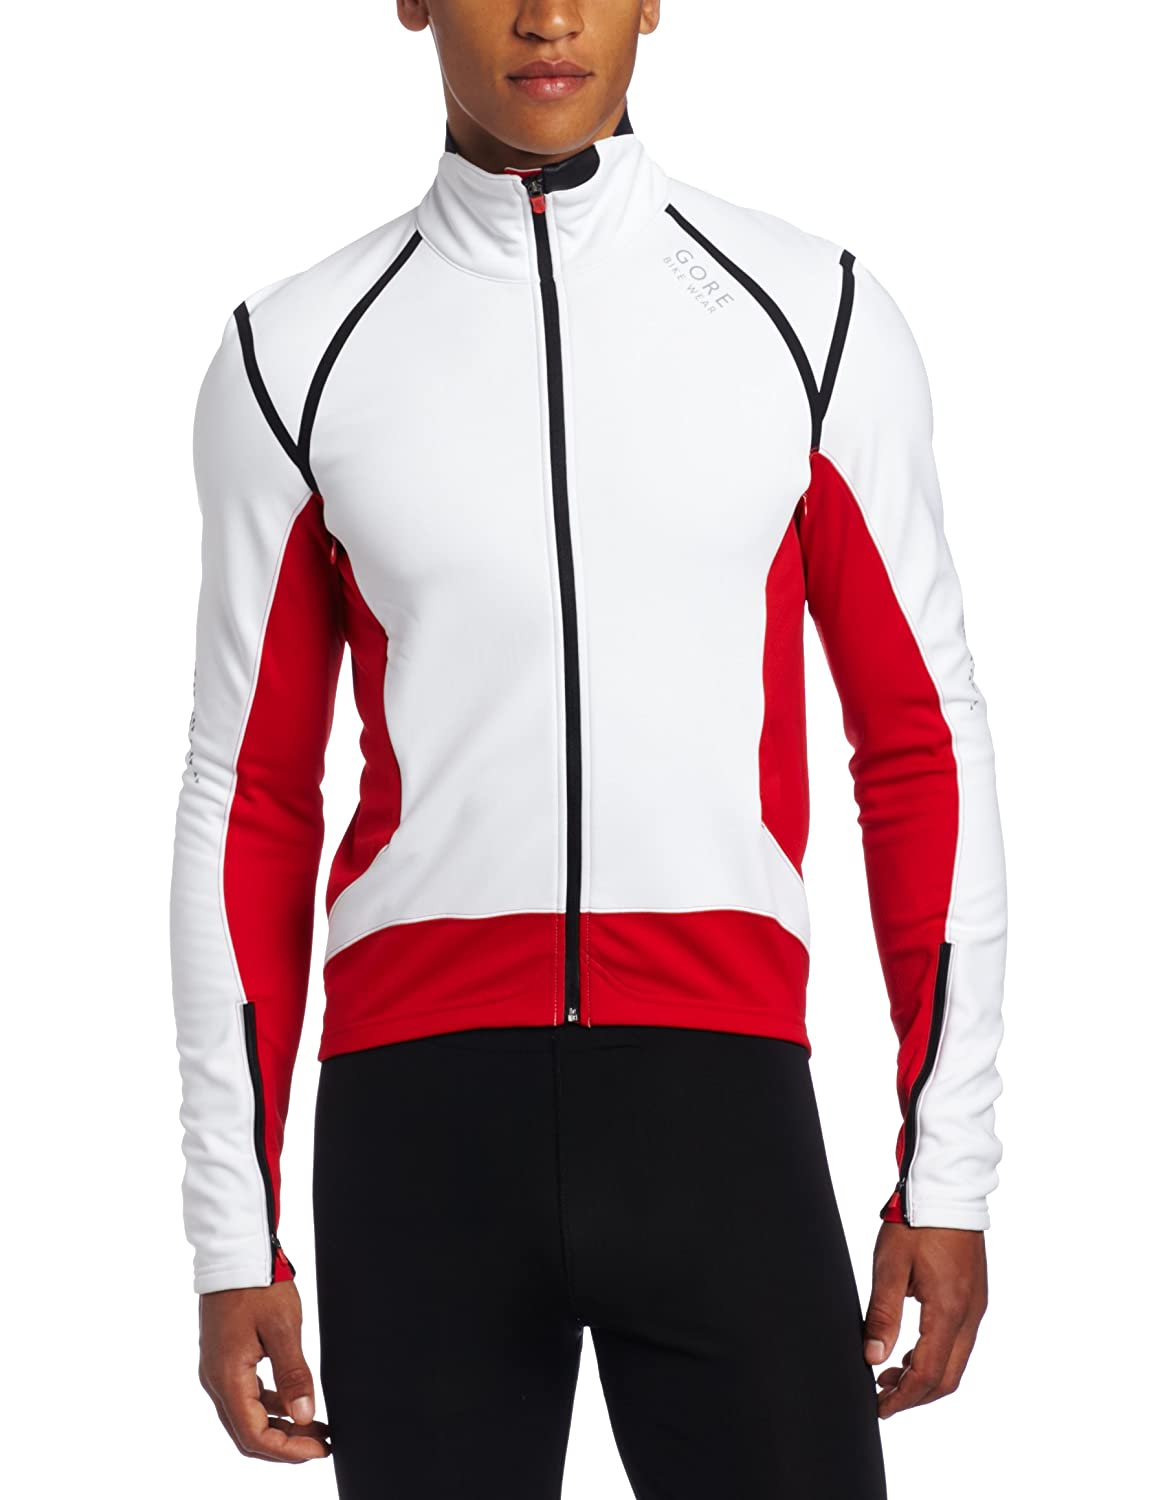 GORE BIKE WEAR Xenon 2.0 SO - Chaqueta de Ciclismo para ...